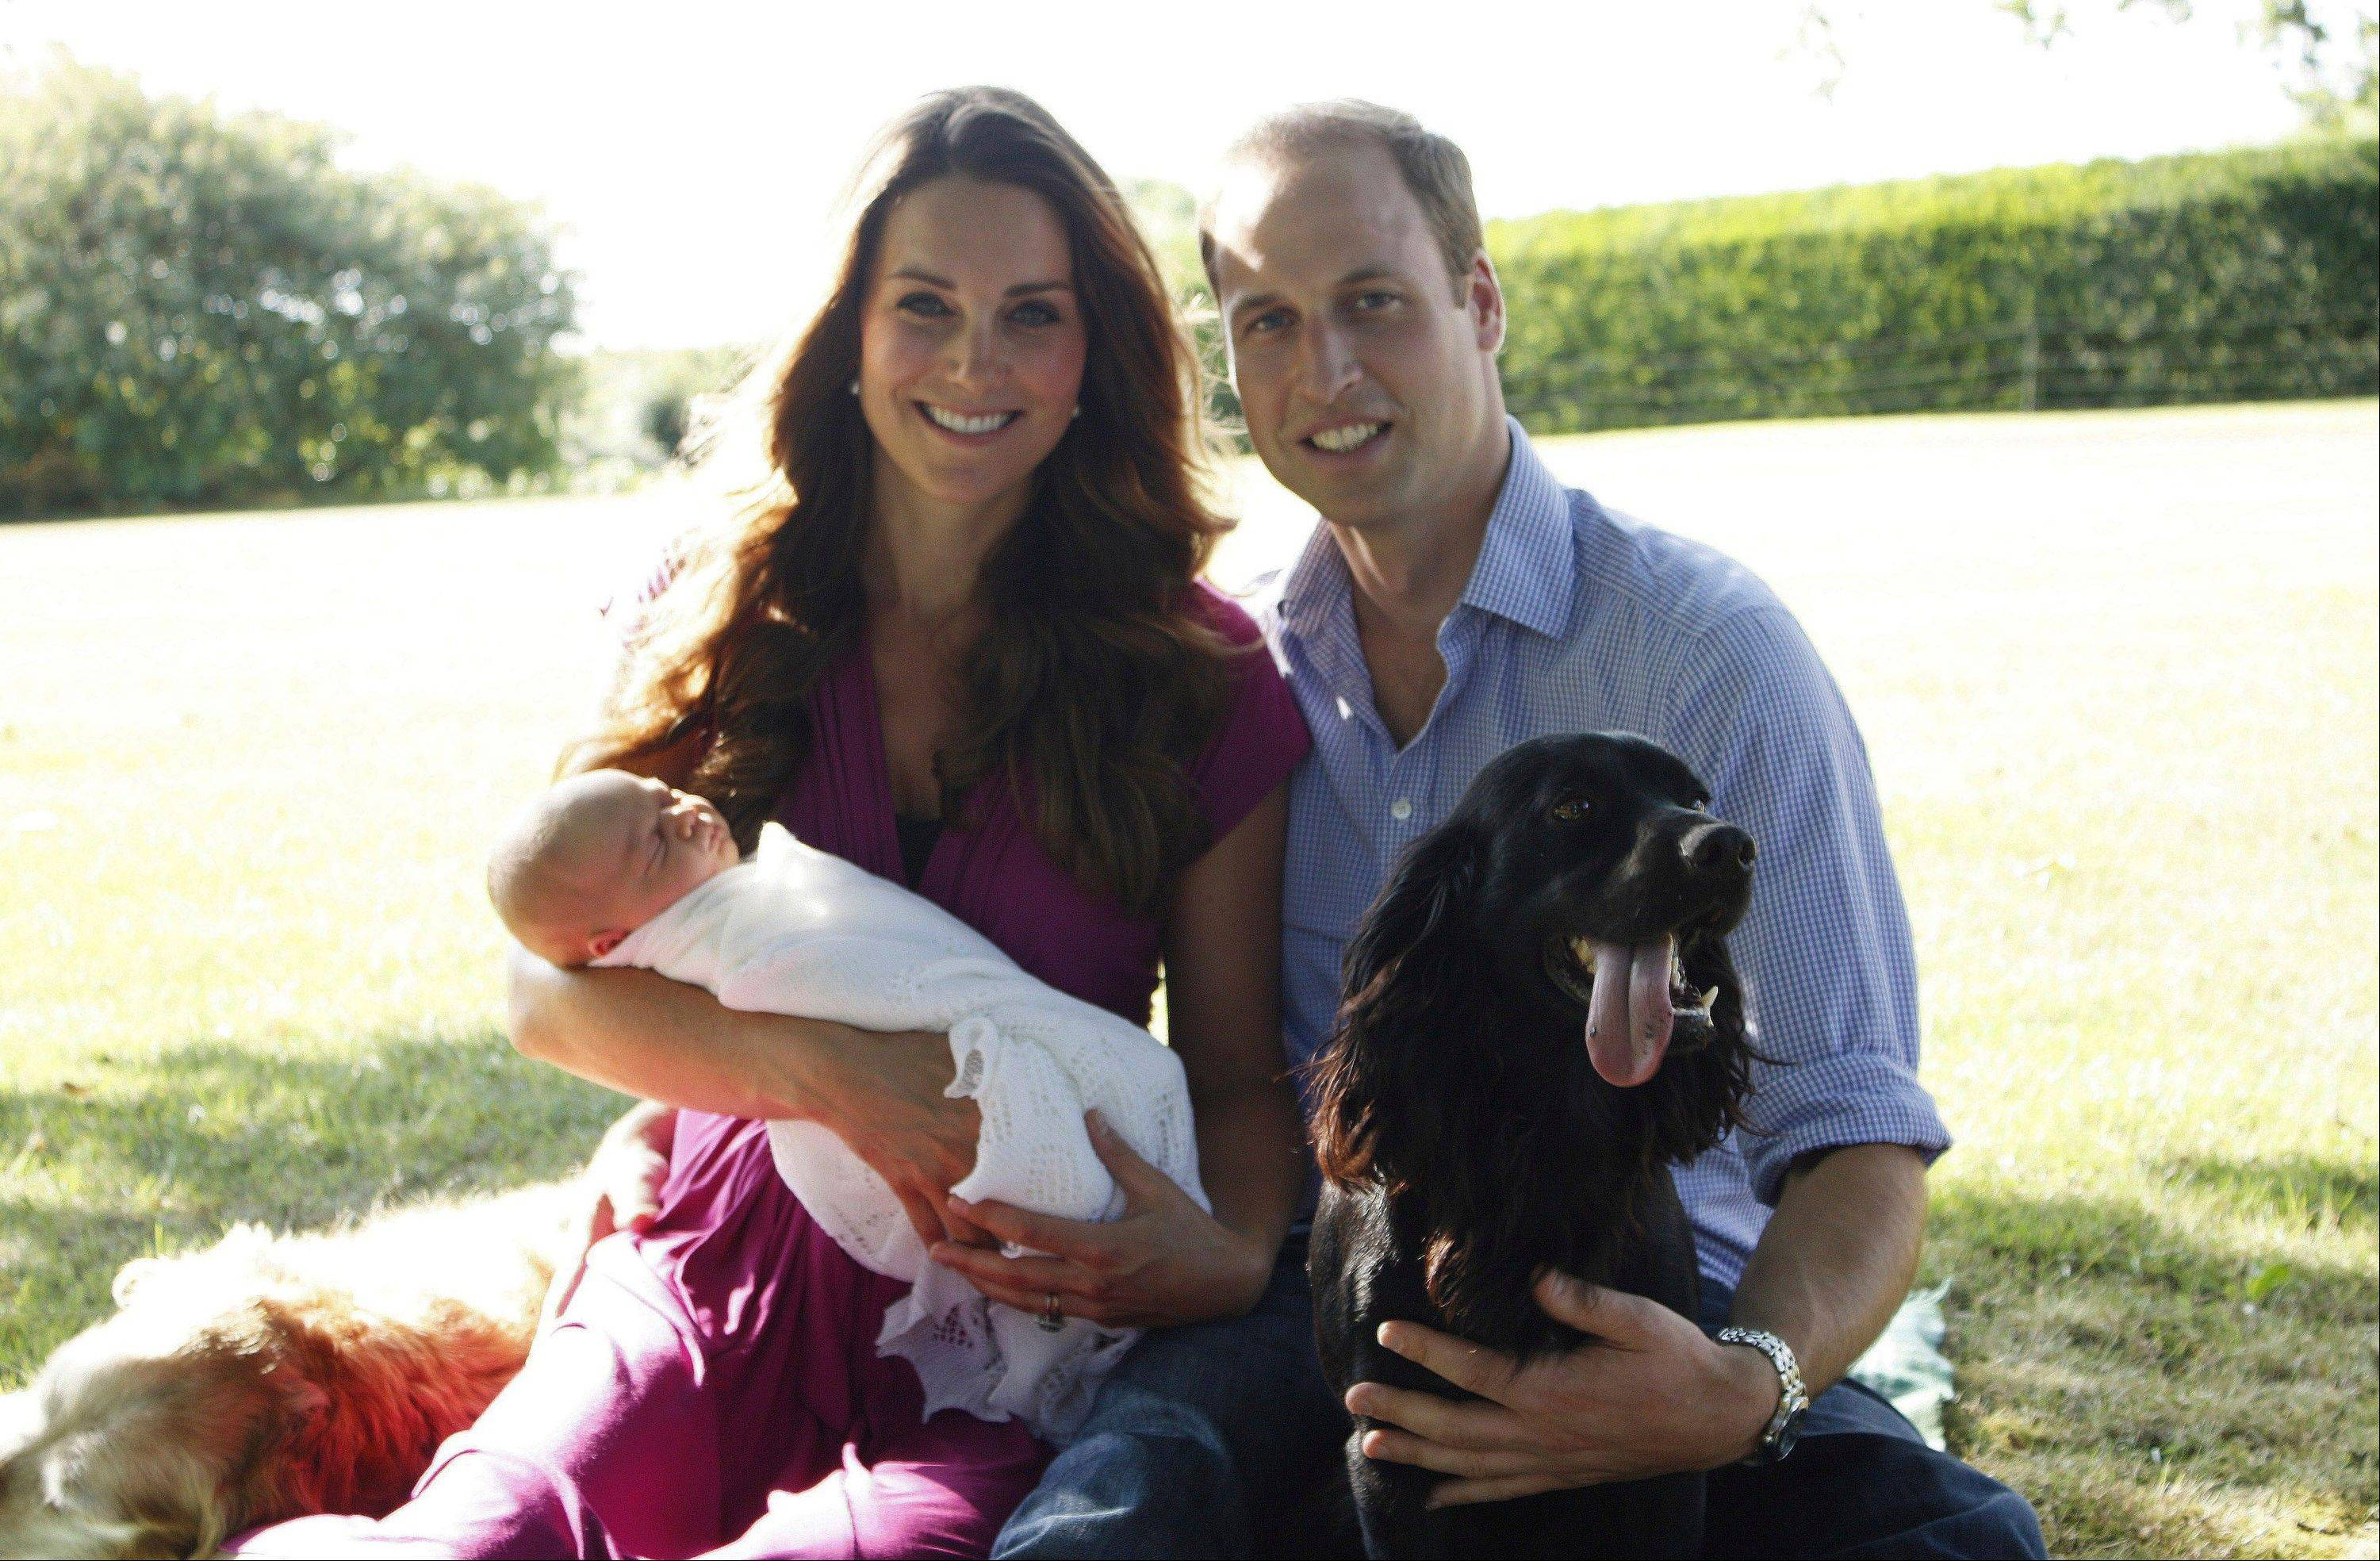 This image taken by Michael Middleton, the Duchess's father, in early August 2013 and supplied by Kensington Palace, shows the Duke and Duchess of Cambridge with their son, Prince George, in the garden of the Middleton family home in Bucklebury, England, with Tilly the retriever, seen left, a Middleton family pet, and Lupo, the couple's cocker spaniel.